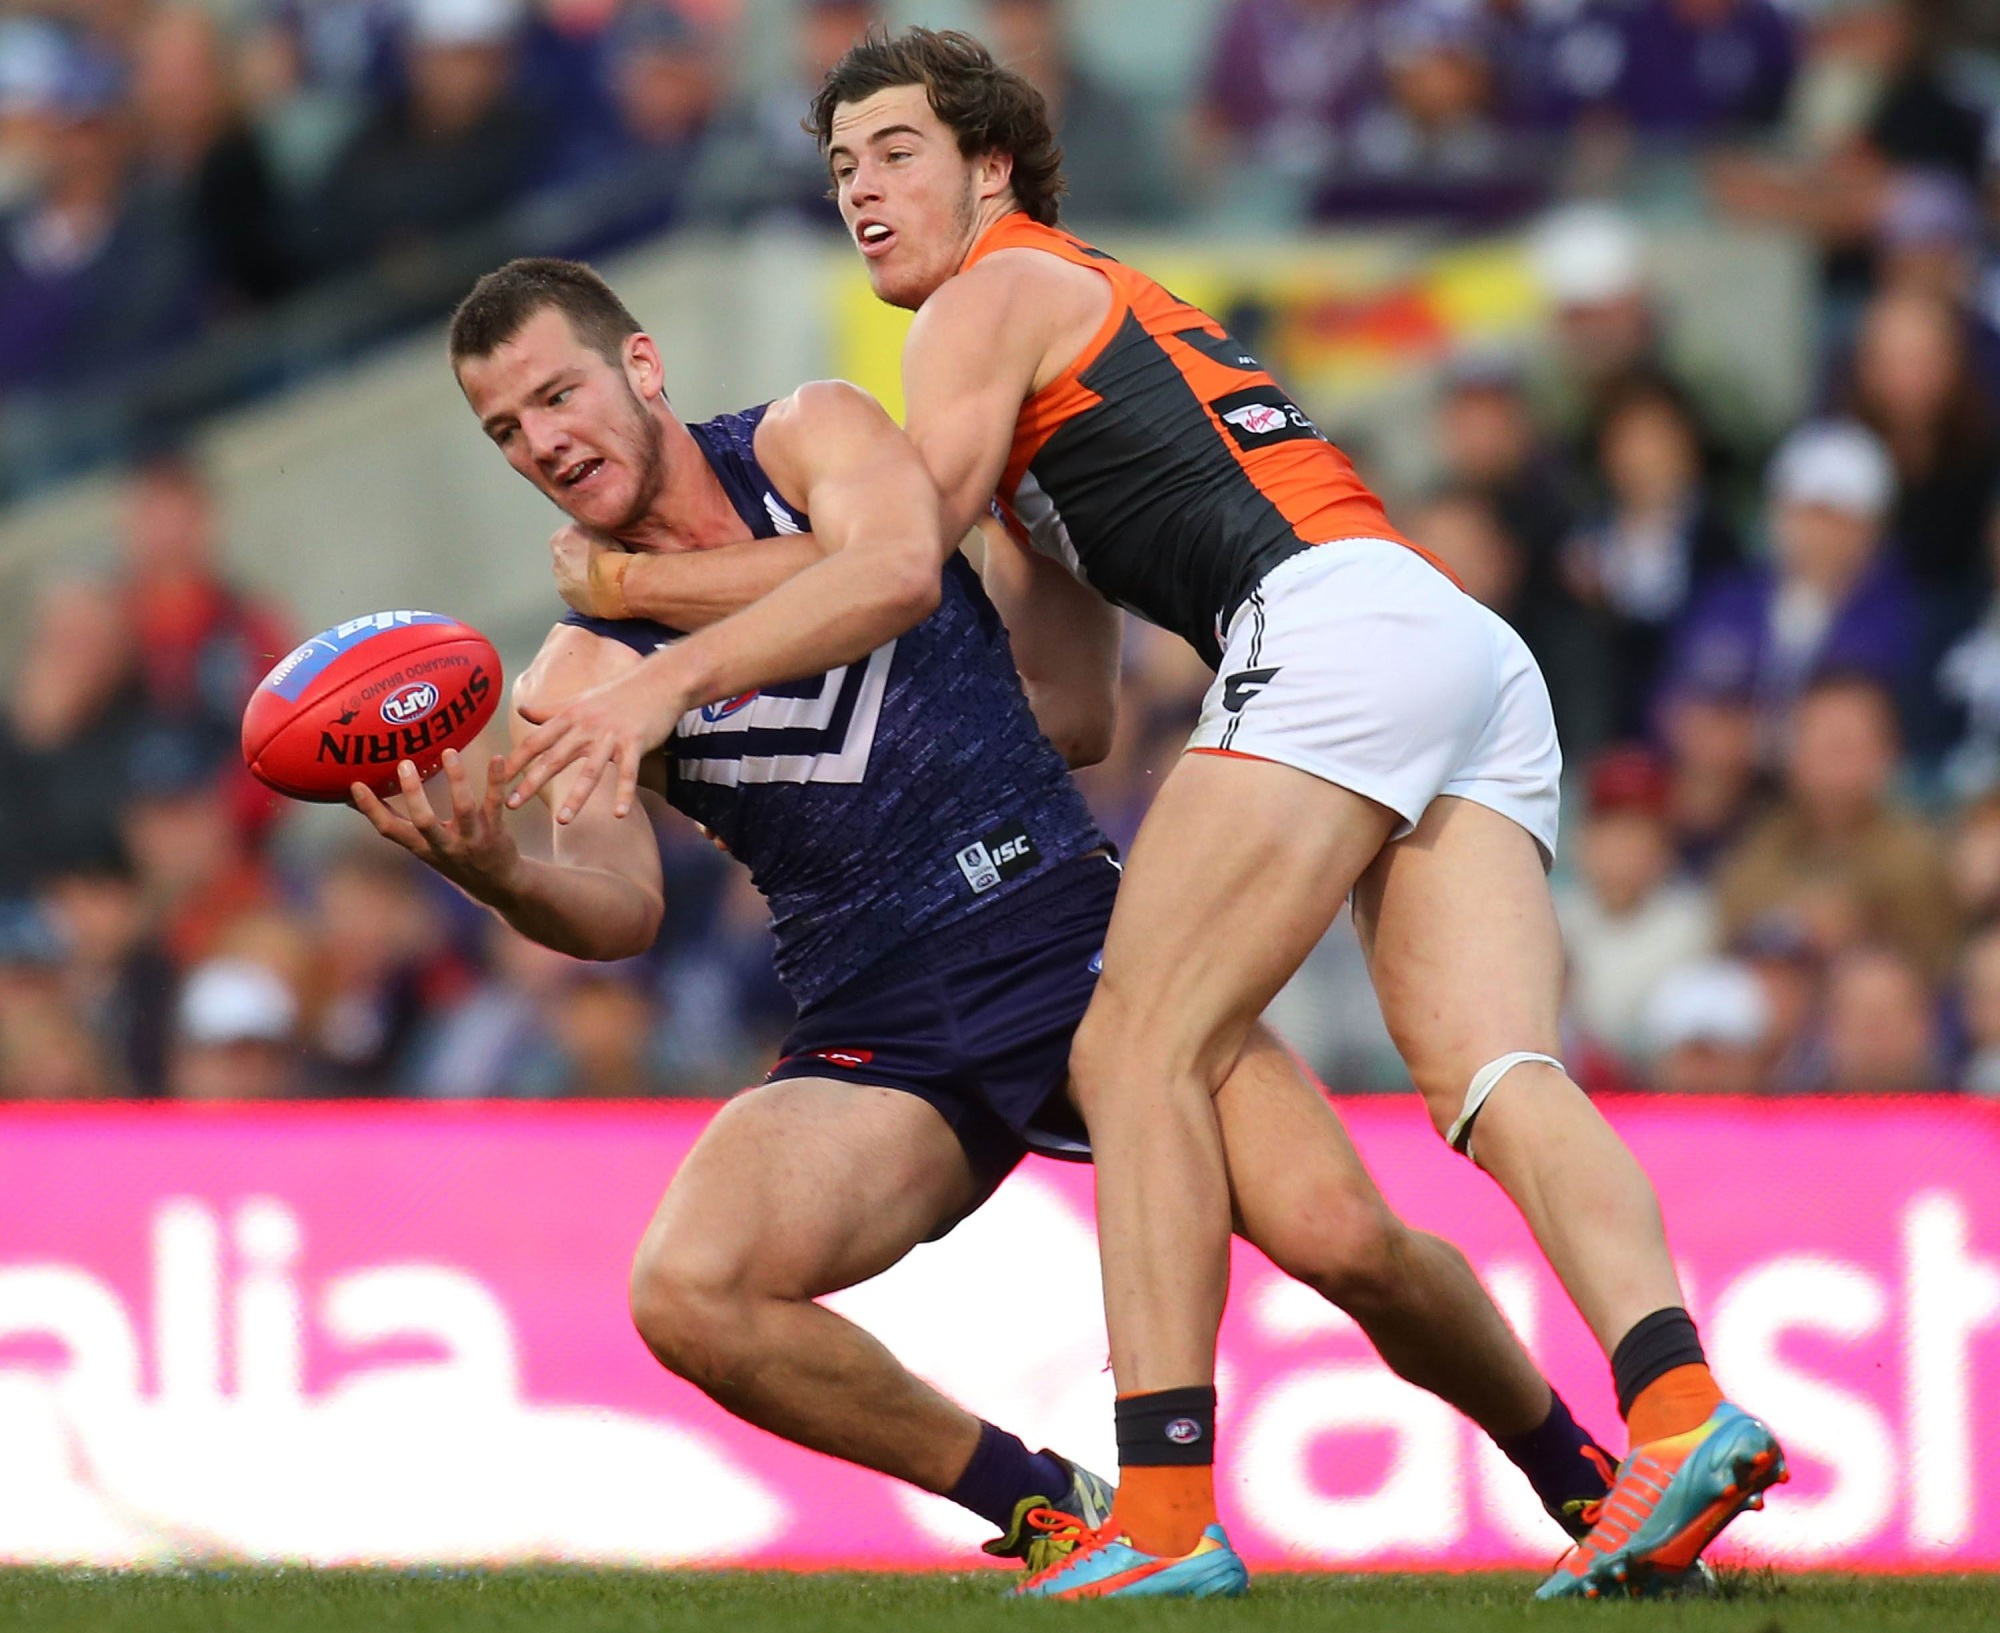 Fremantle's Michael Apeness has signed a new two-year contract extension. Picture Paul Kane / Stringer